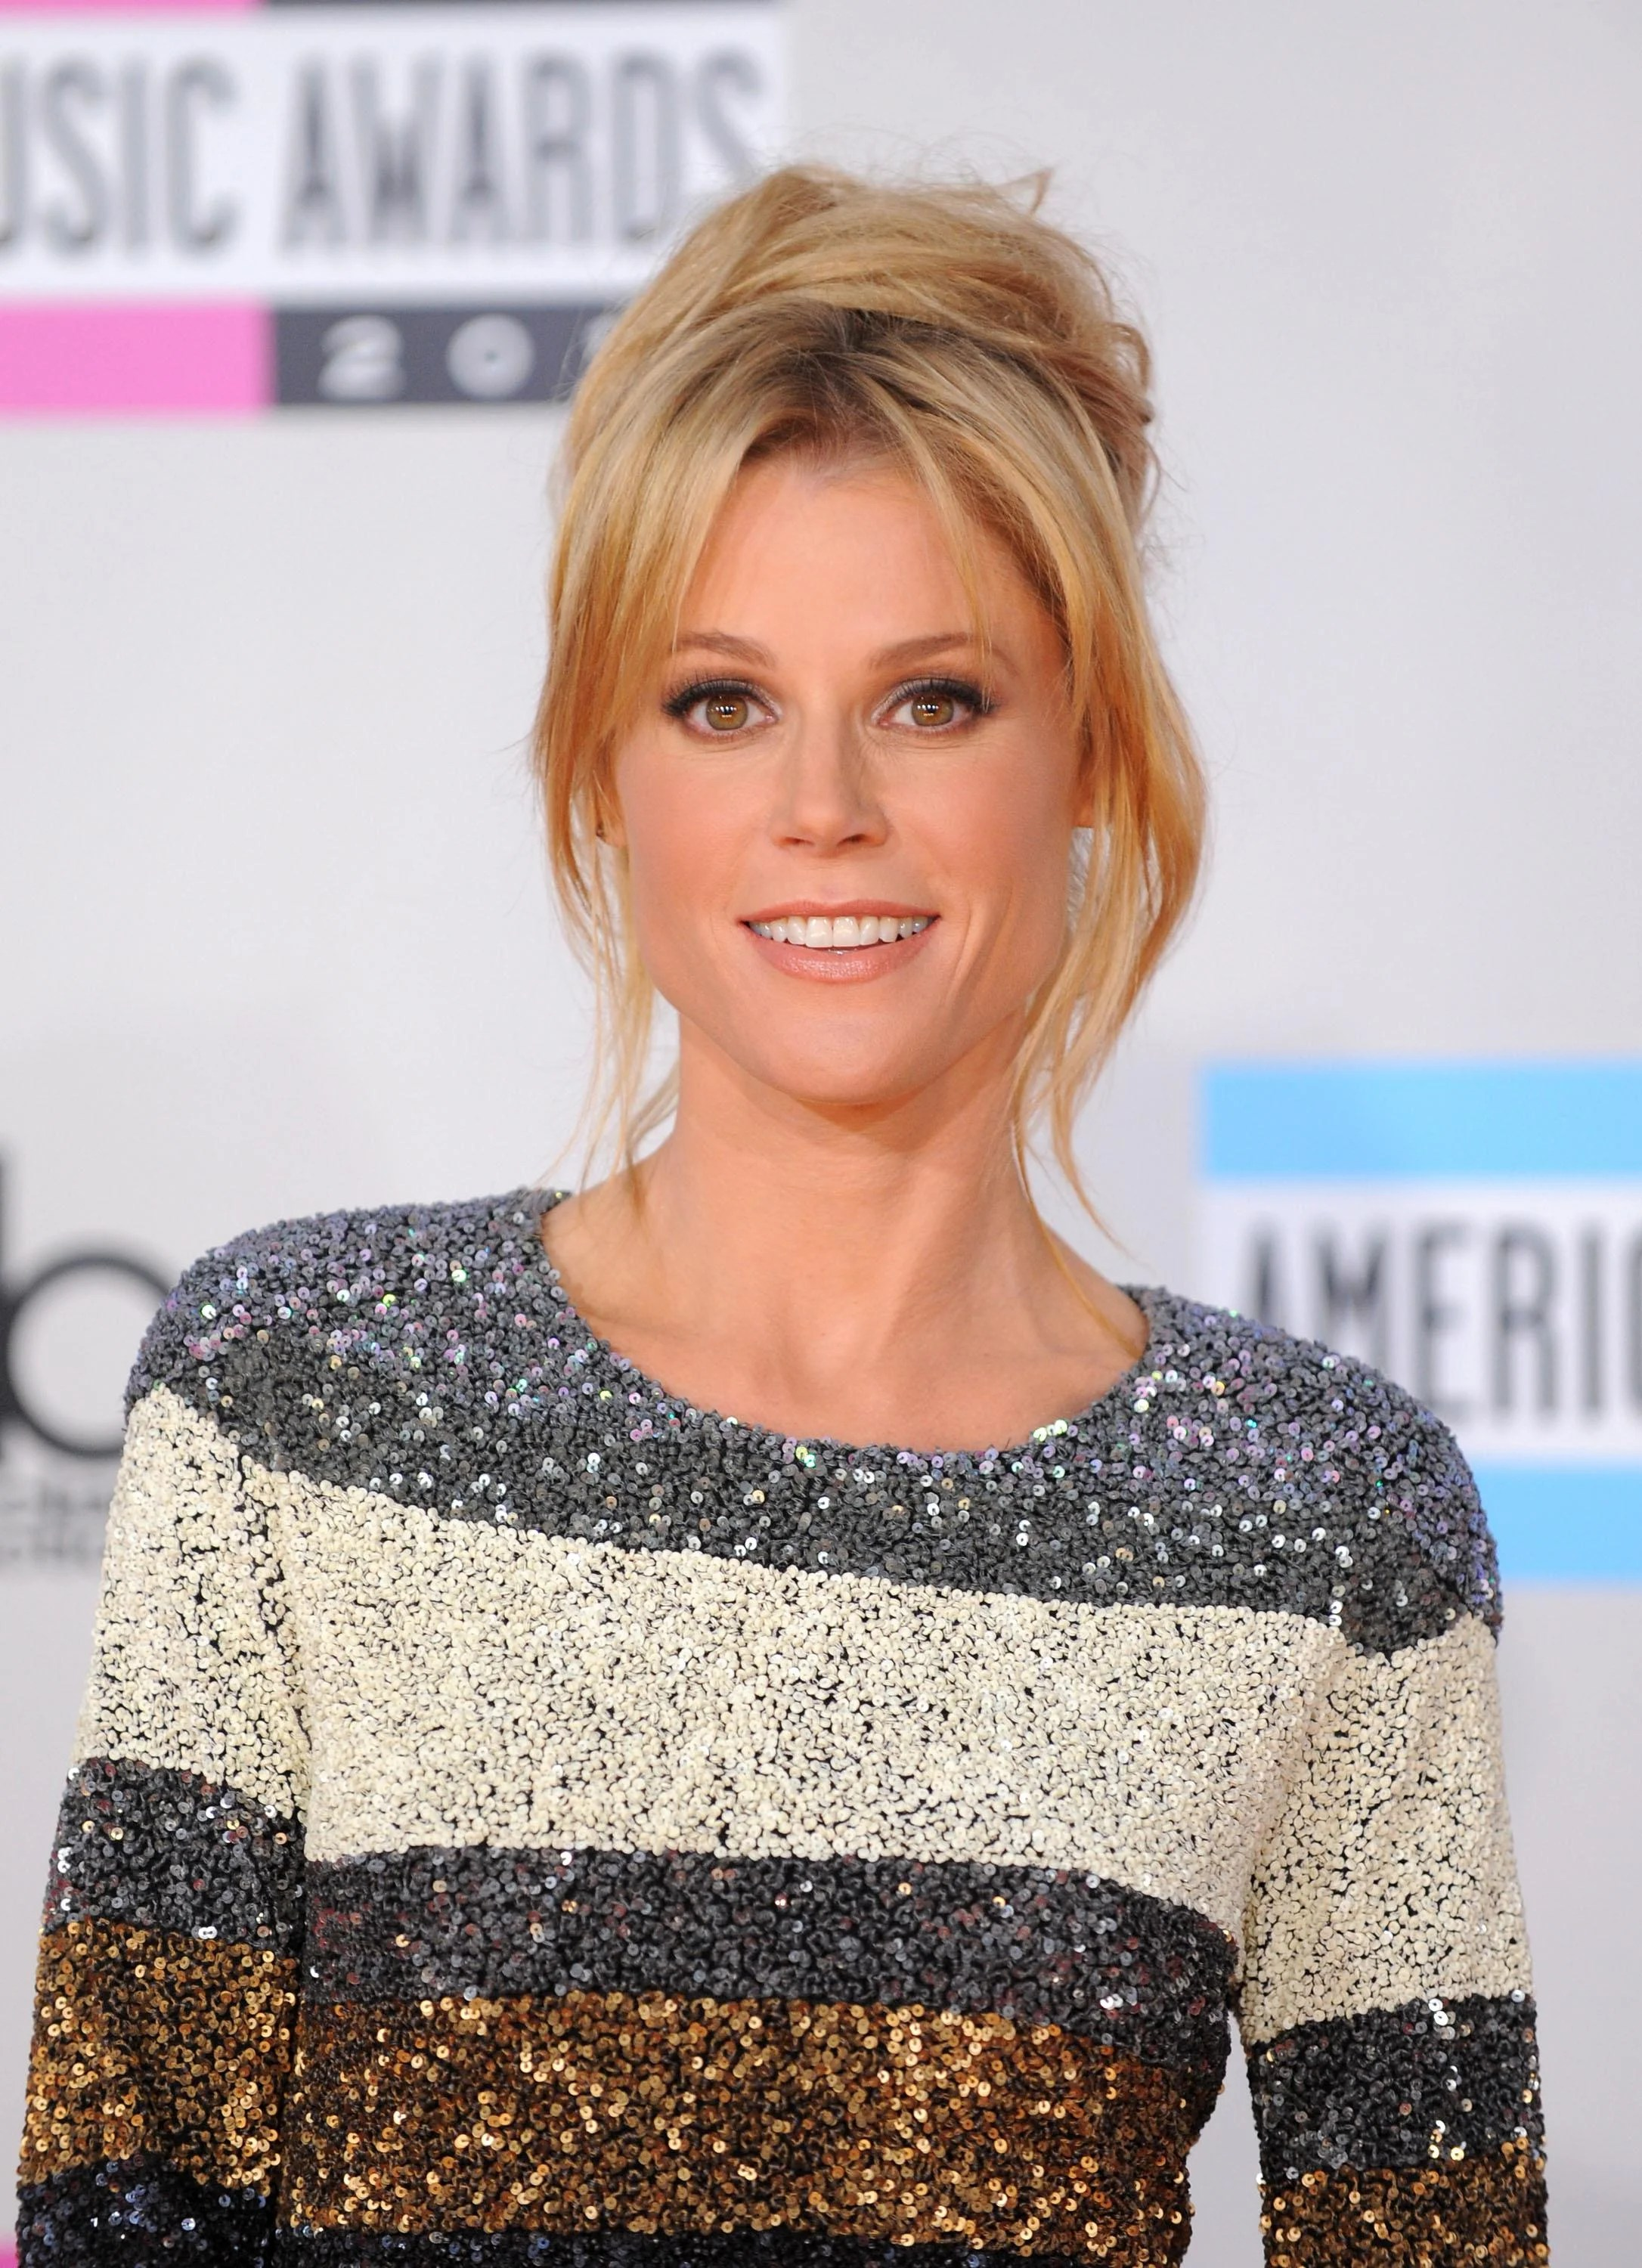 Claire Dunphy Hair : claire, dunphy, Julie, Bowen, Claire, Dunphy, Modern, Family:, Character, Study